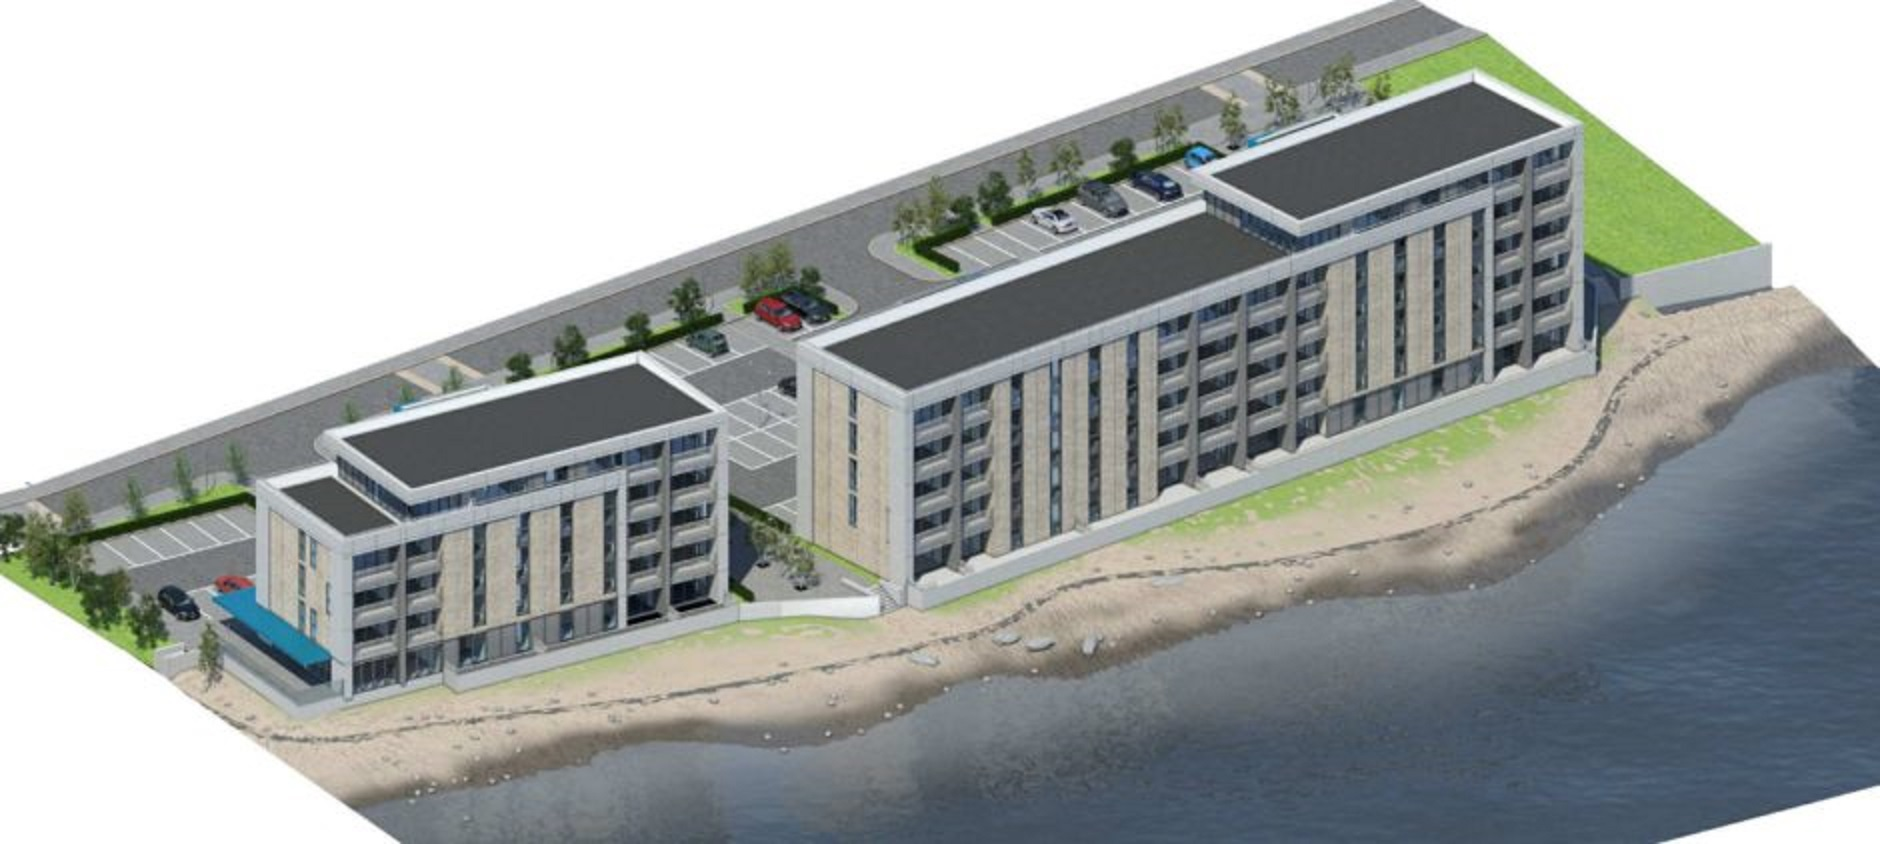 The development would have provided 55 new homes.